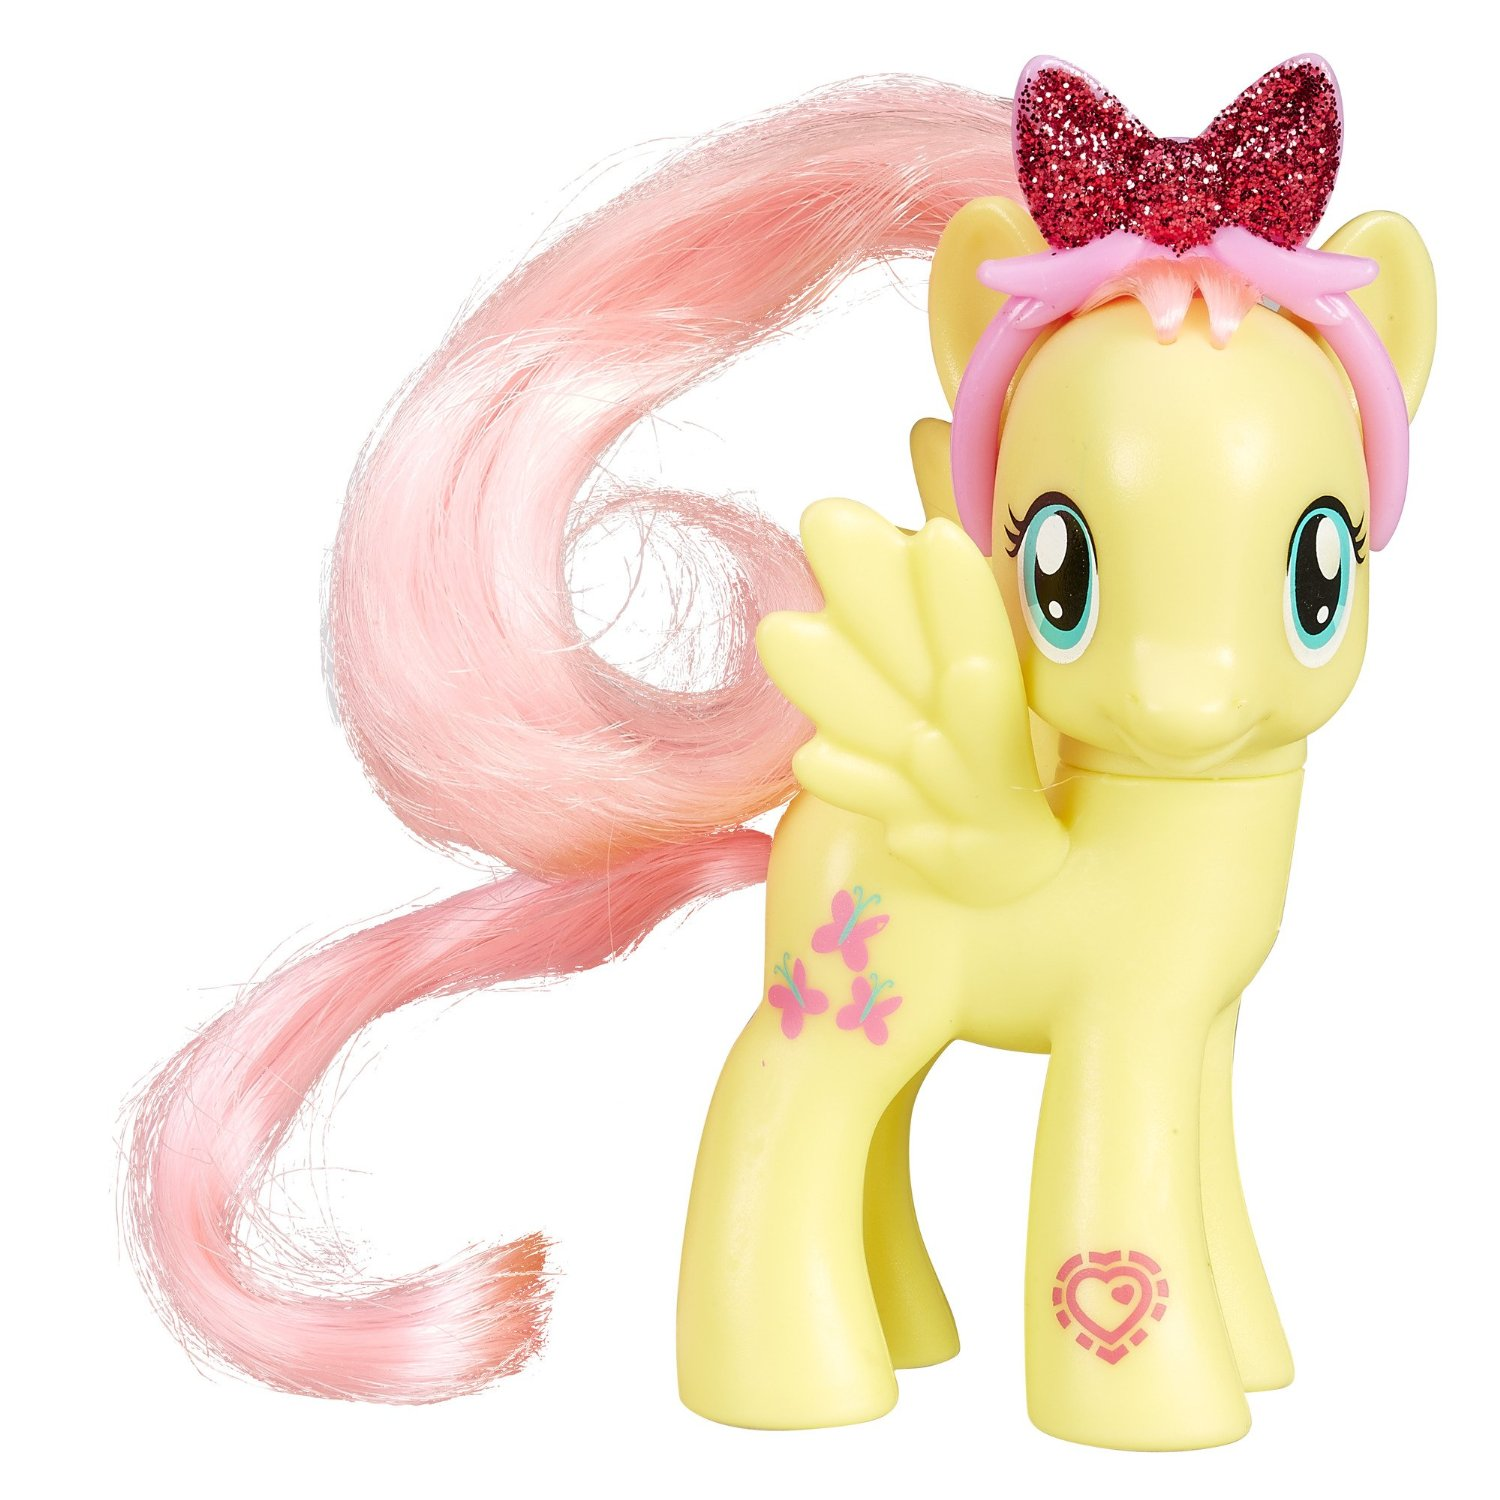 The My Little Pony Christmas Gifts Guide 2015 | MLP Merch